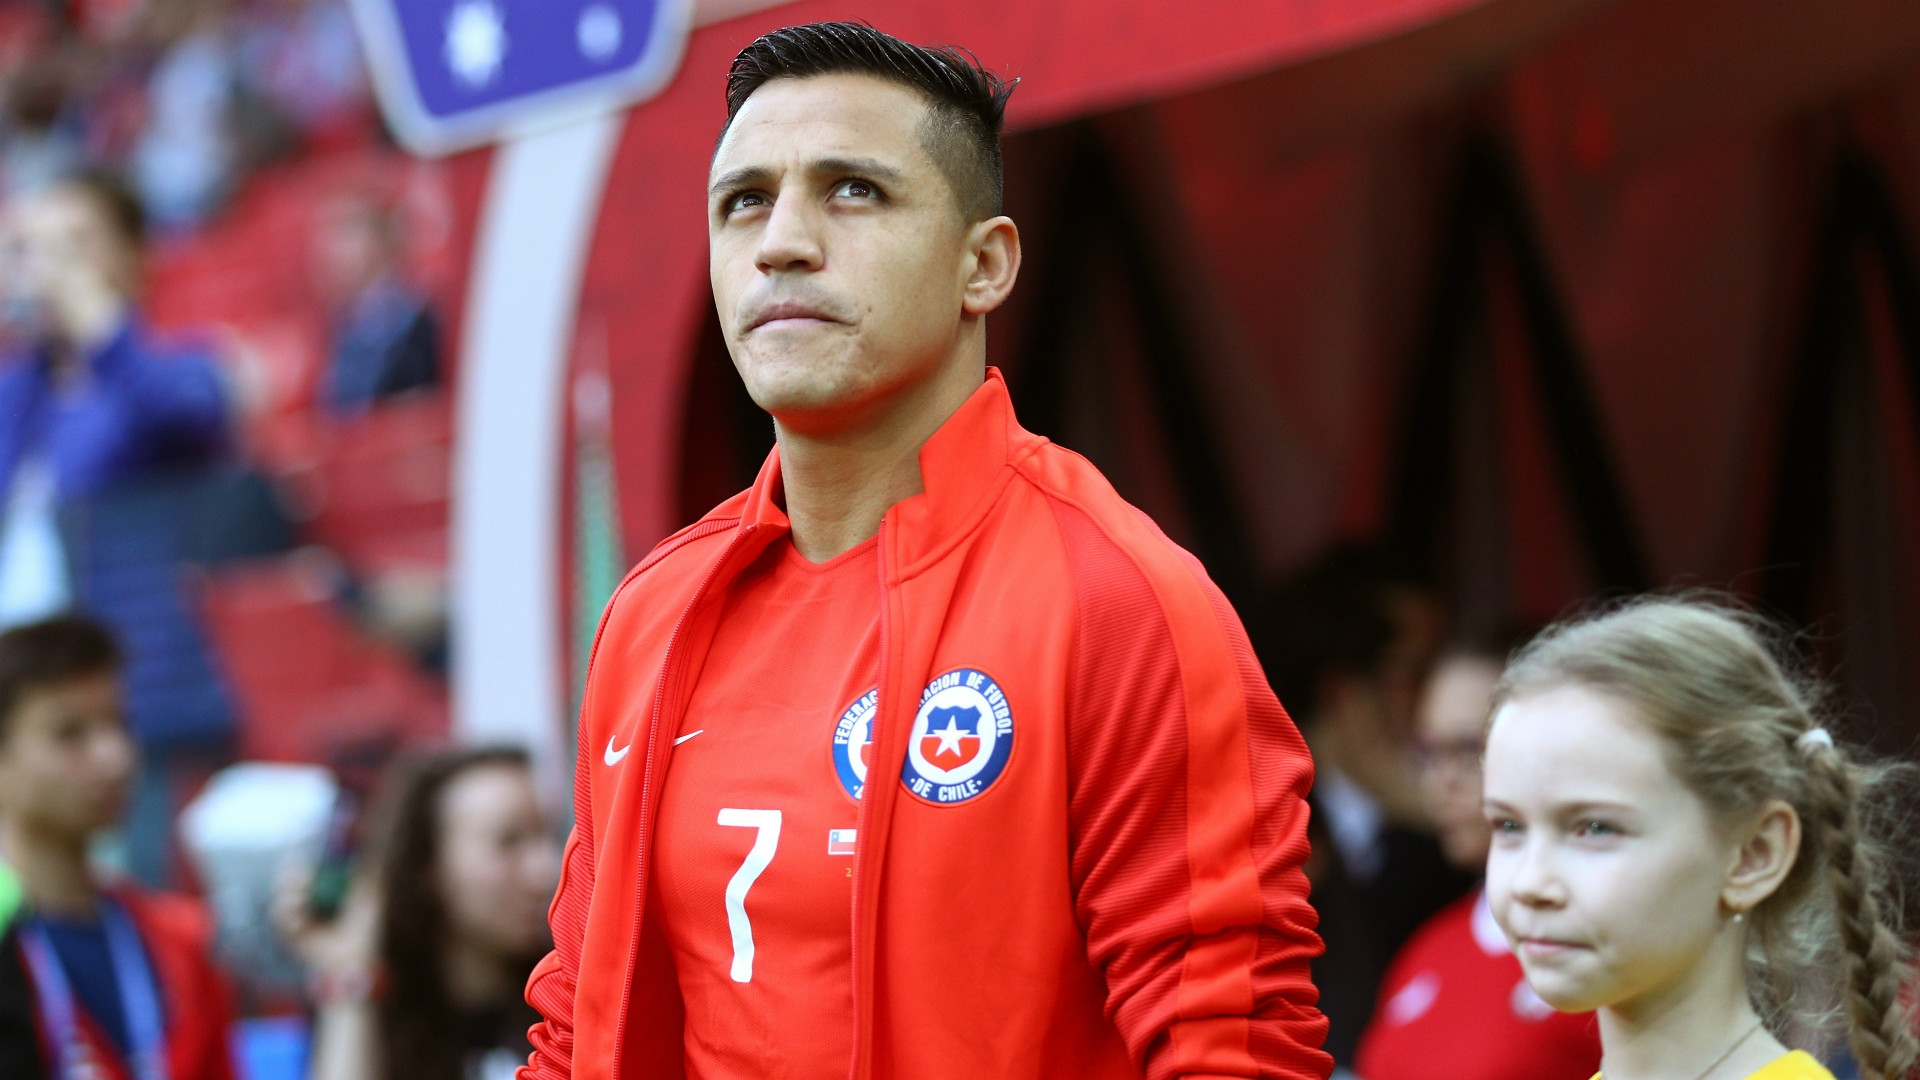 Sanchez is currently on international duty with Chile at the Confederations Cup